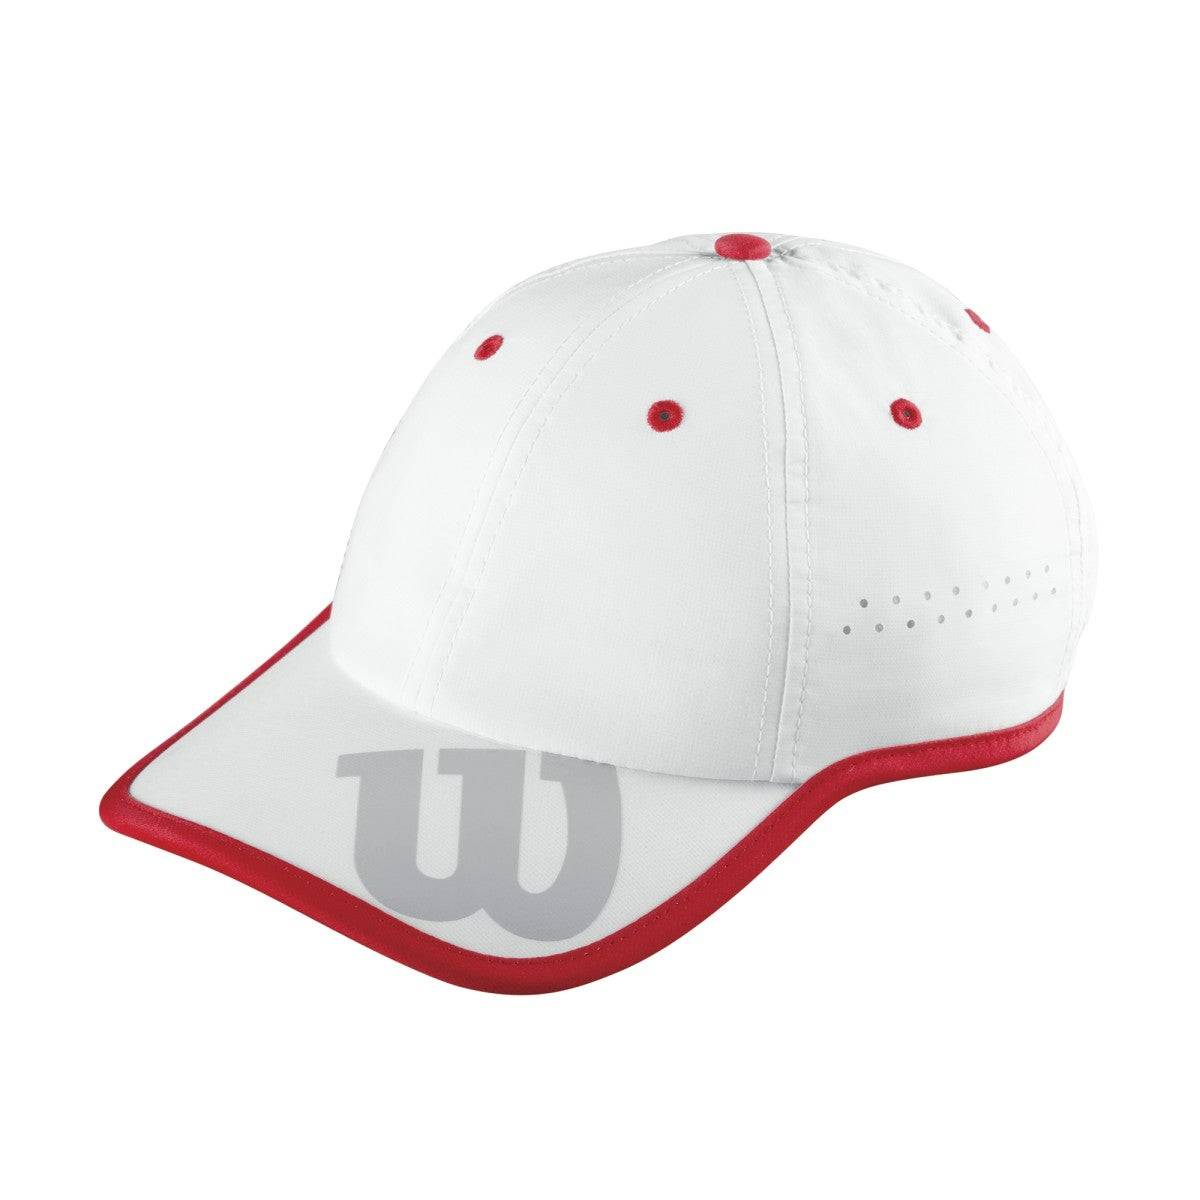 Wilson Brand Hat in White - Size: One Size Fits Most  - Unisex - White - Size: One Size Fits Most